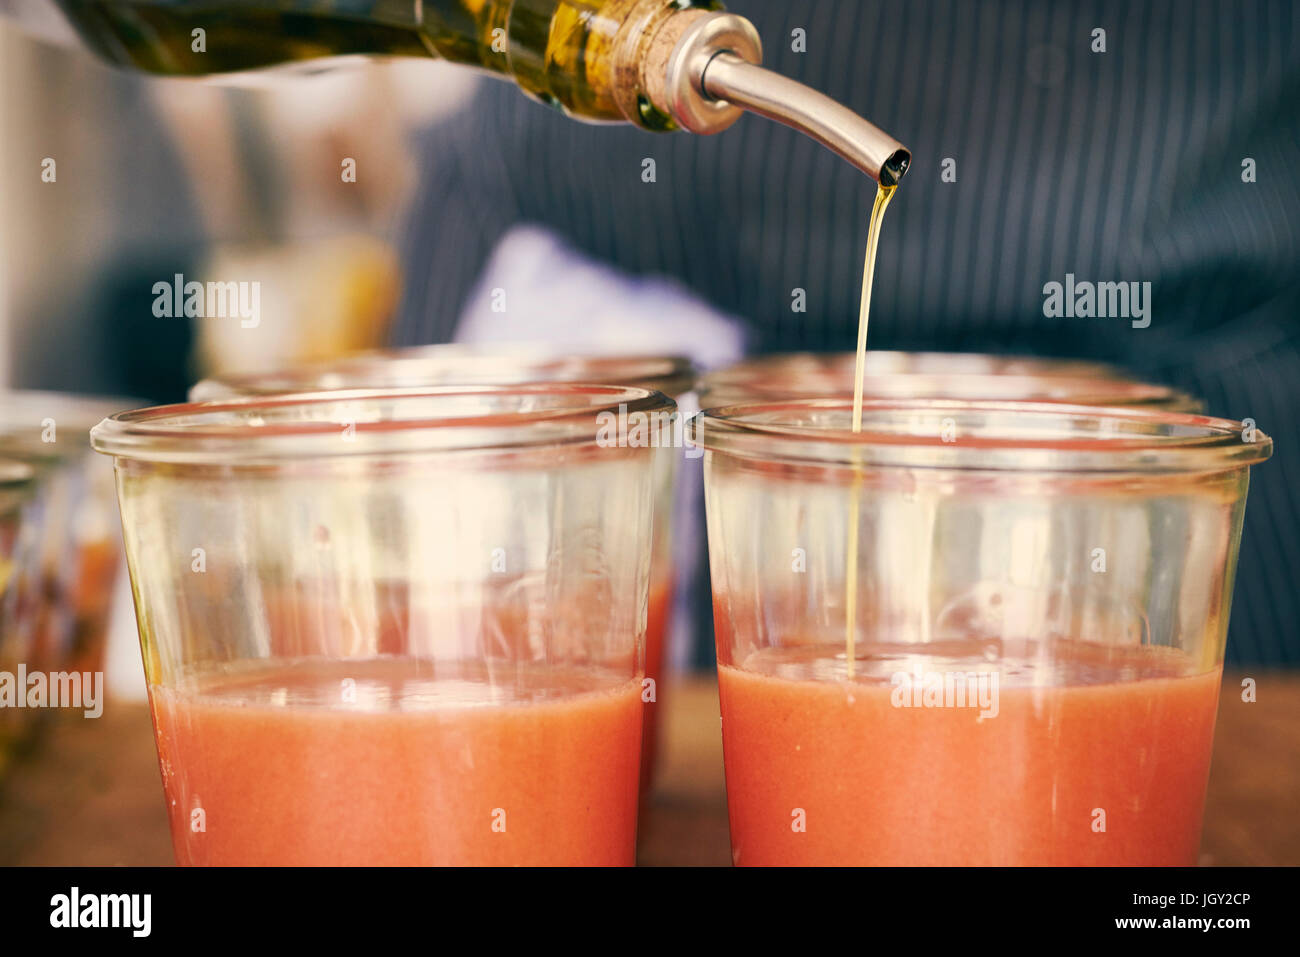 Cropped view of olive oil being drizzled into smoothie - Stock Image